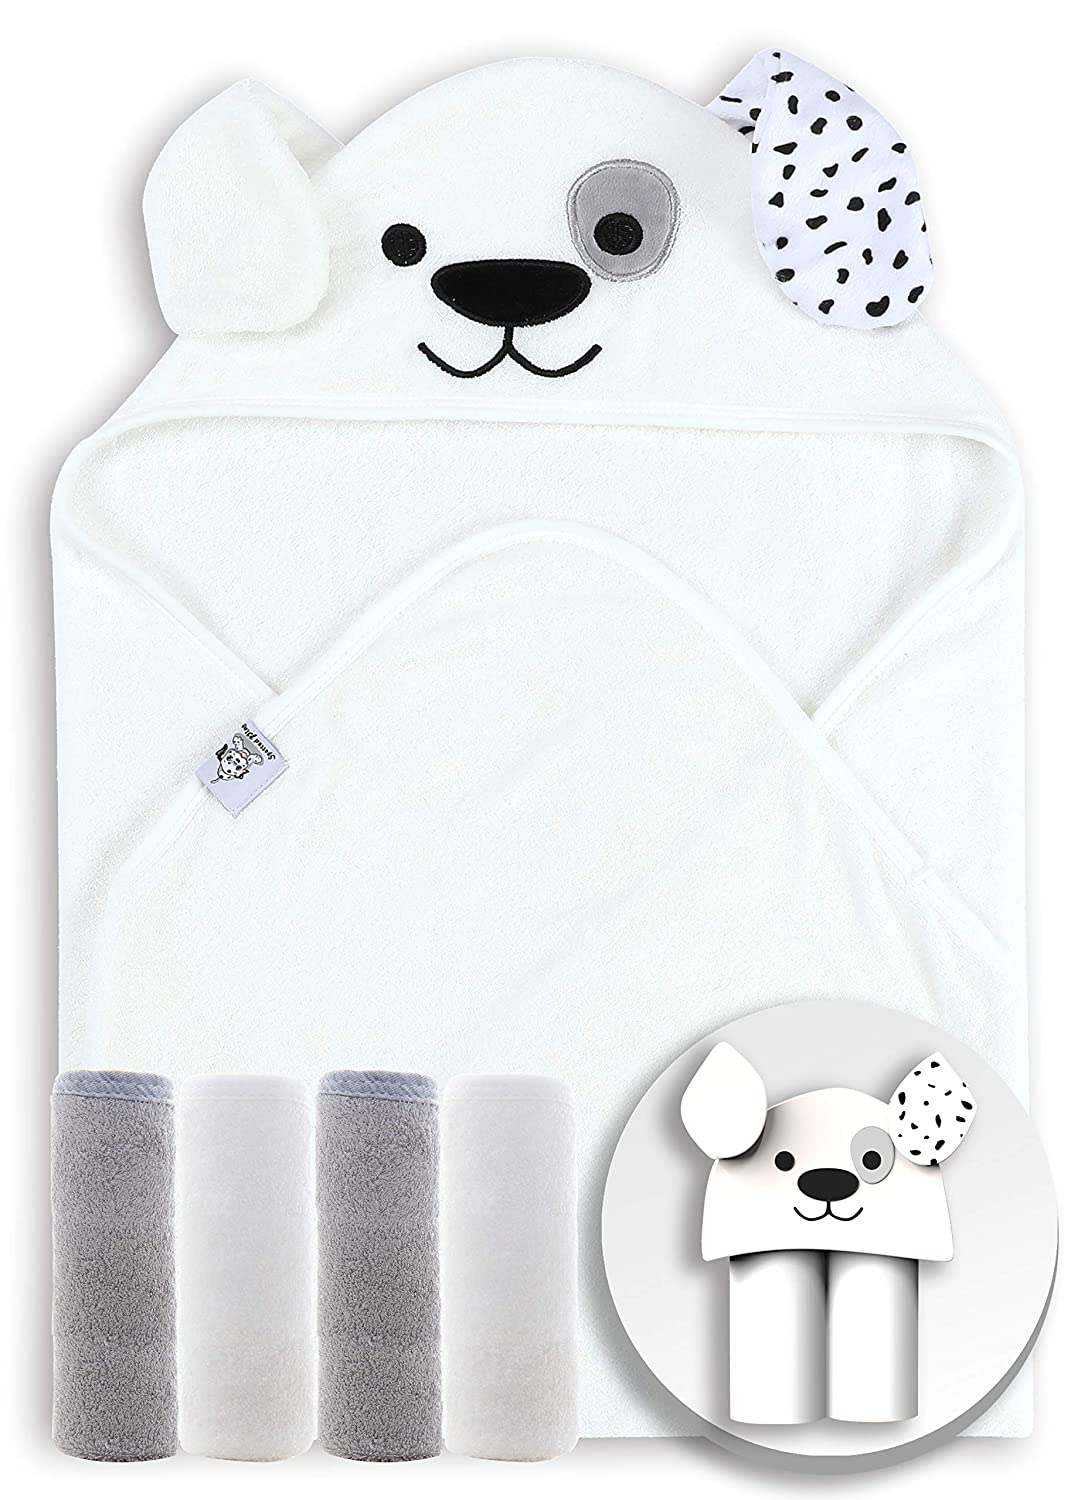 Spotted Play 5-Pieces Bamboo Baby Bath Towel and Washcloths Sets - 1 pc Towel and 4 pcs Washcloths - Bamboo Hooded Towel for Babies, Toddler,Infant - Absorbent and Hypoallergenic